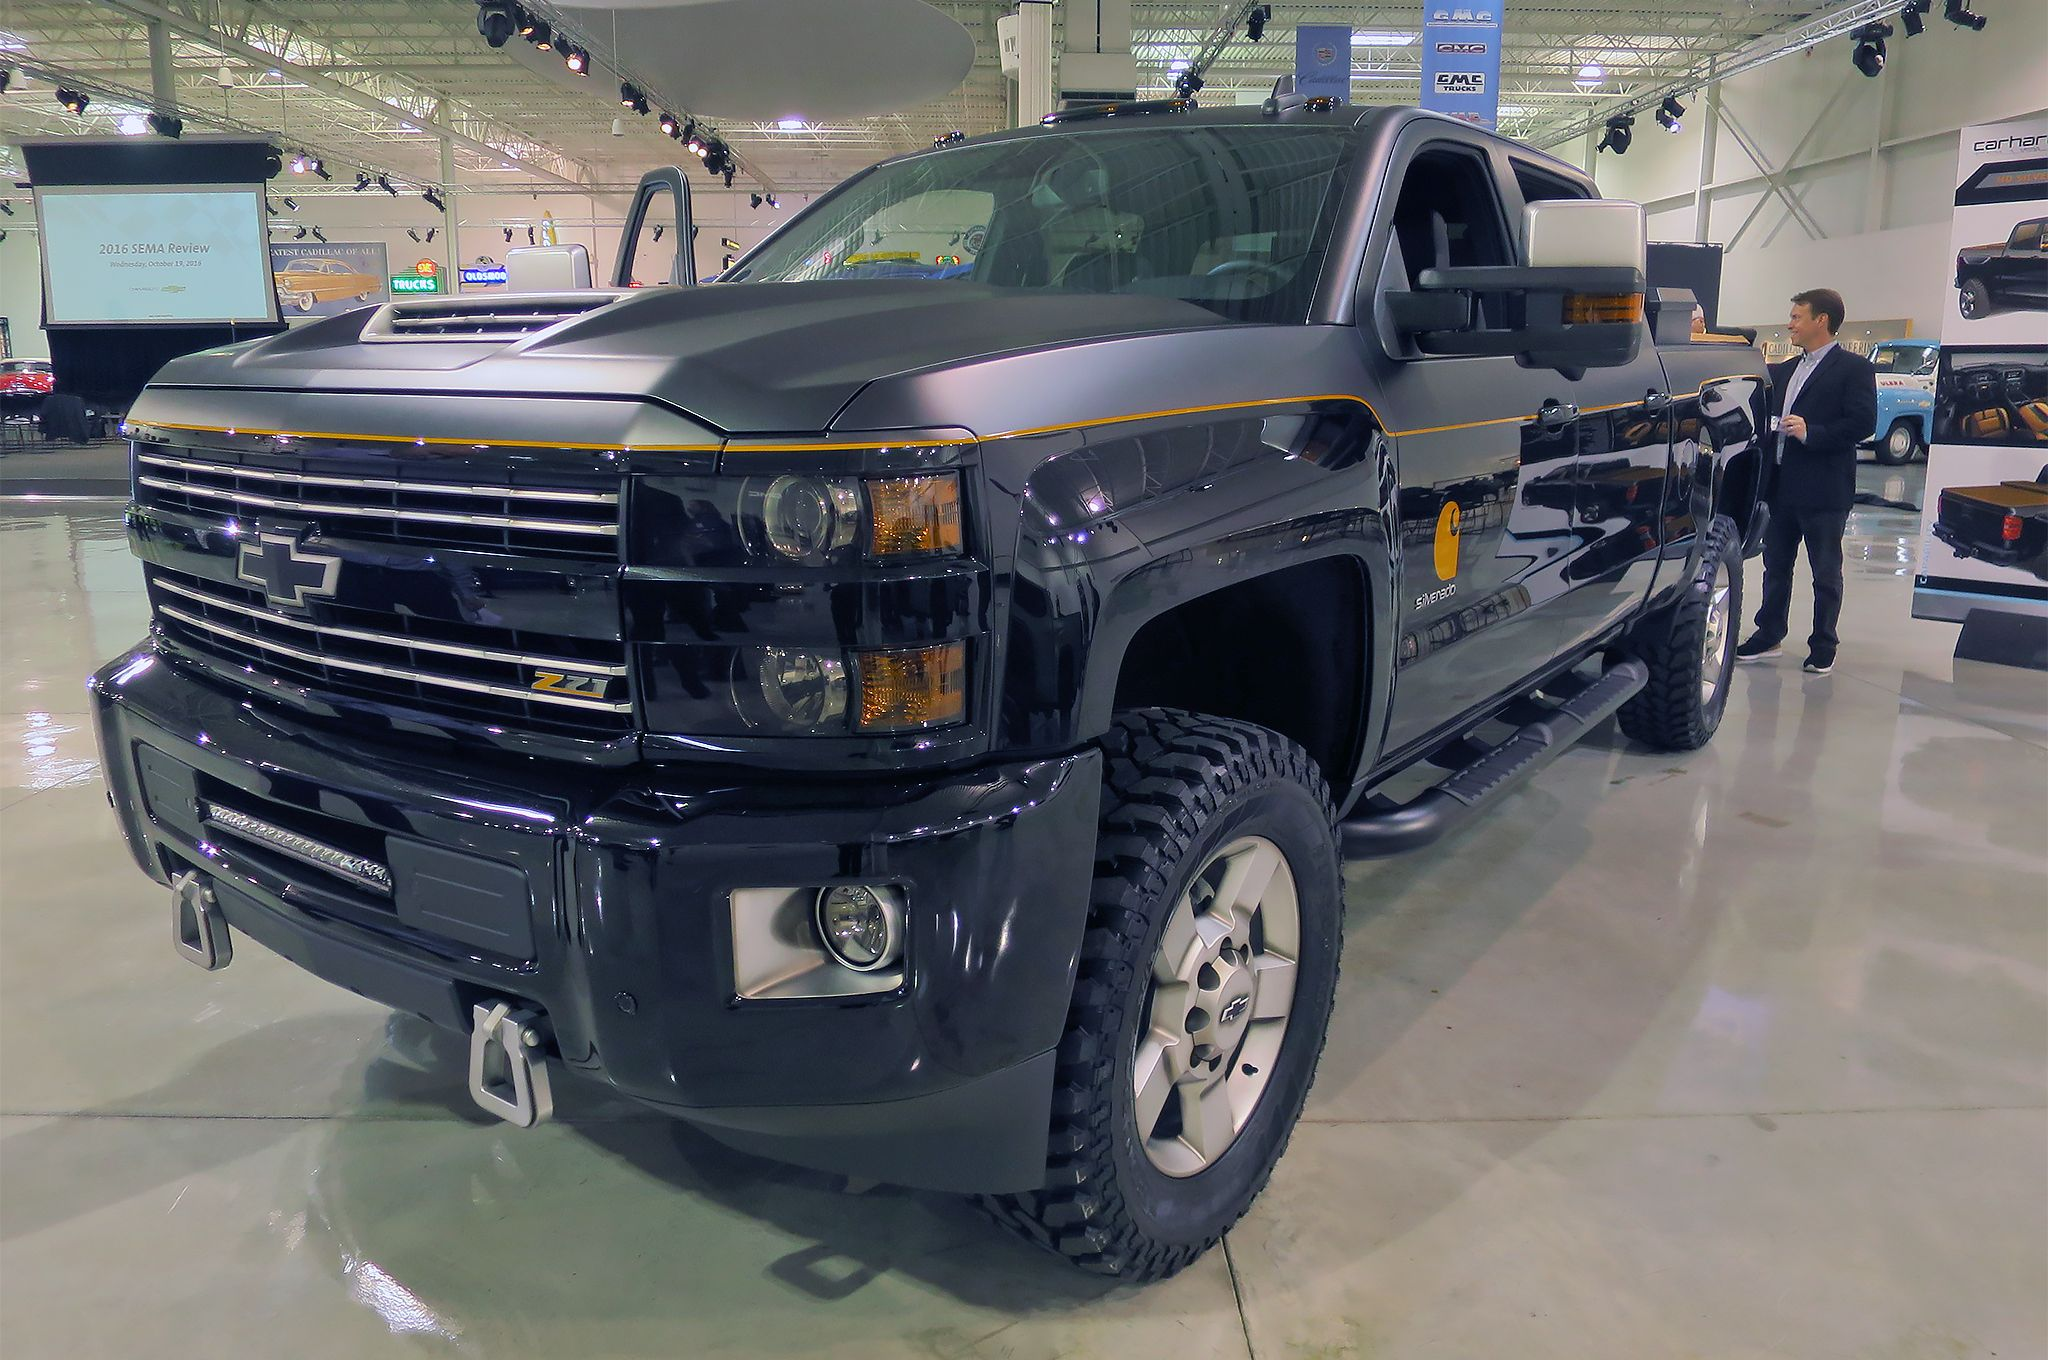 Chevrolet Silverado Hd Carhartt Revealed Before Sema Silverado